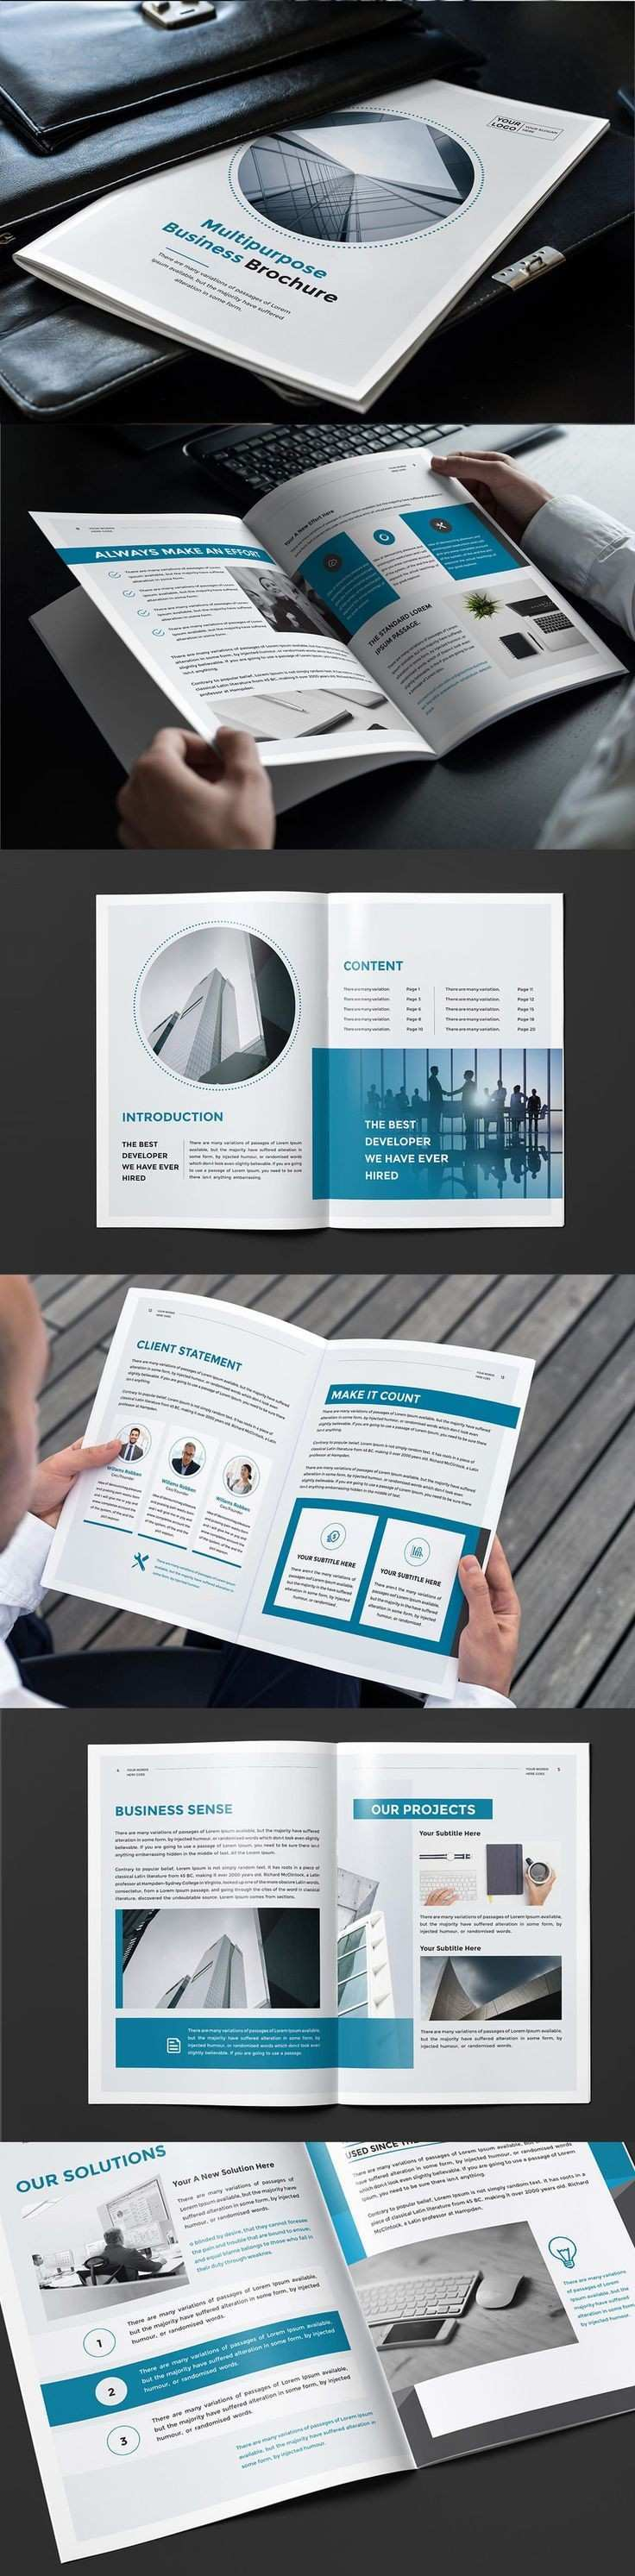 59 best Work Presentations and Proposals images on Pinterest